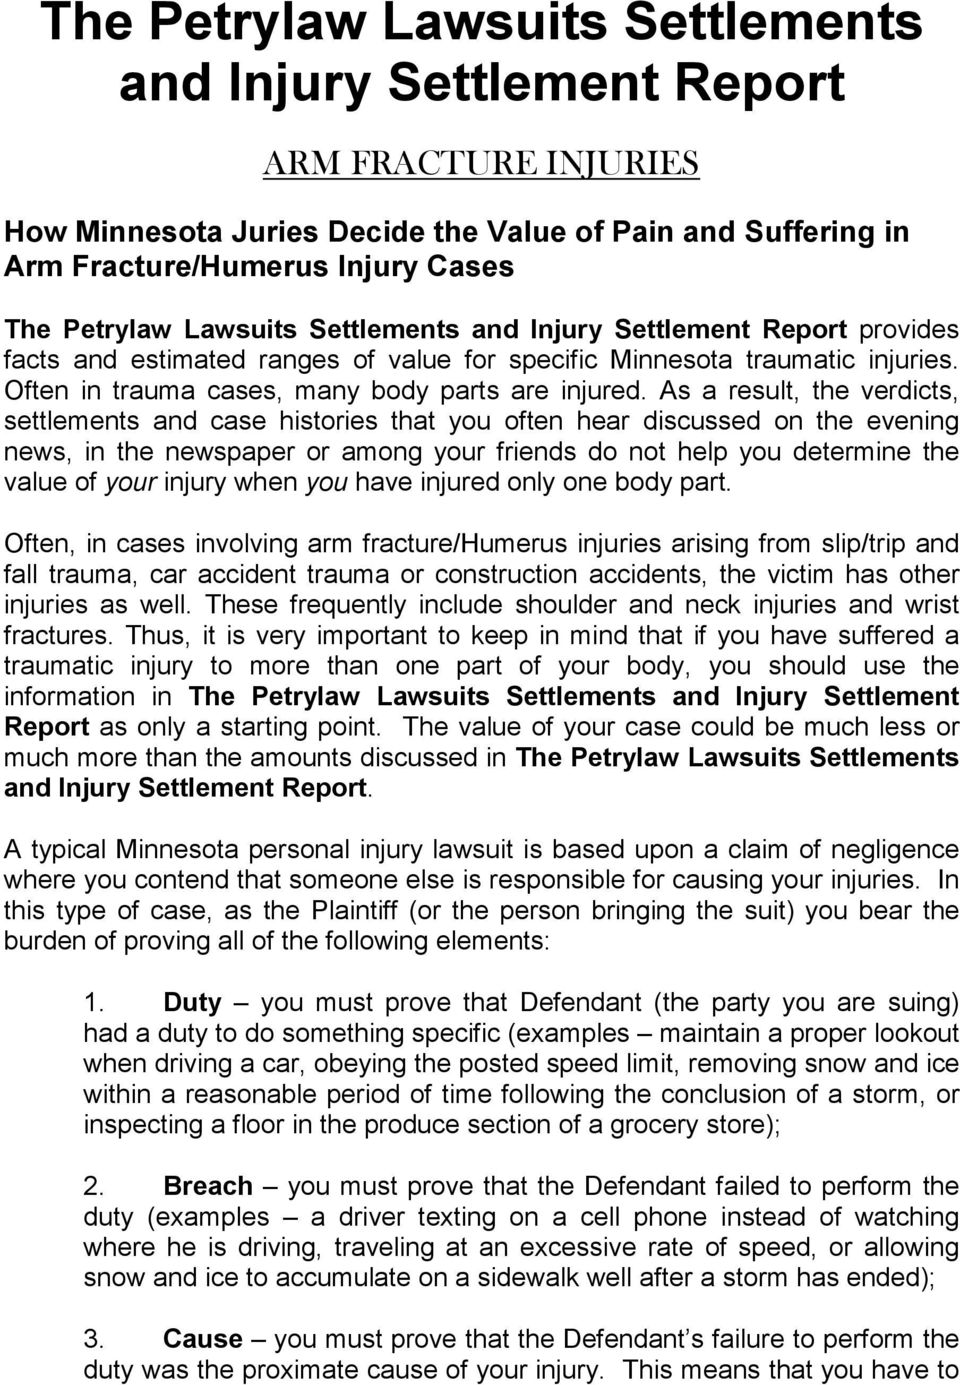 As a result, the verdicts, settlements and case histories that you often hear discussed on the evening news, in the newspaper or among your friends do not help you determine the value of your injury